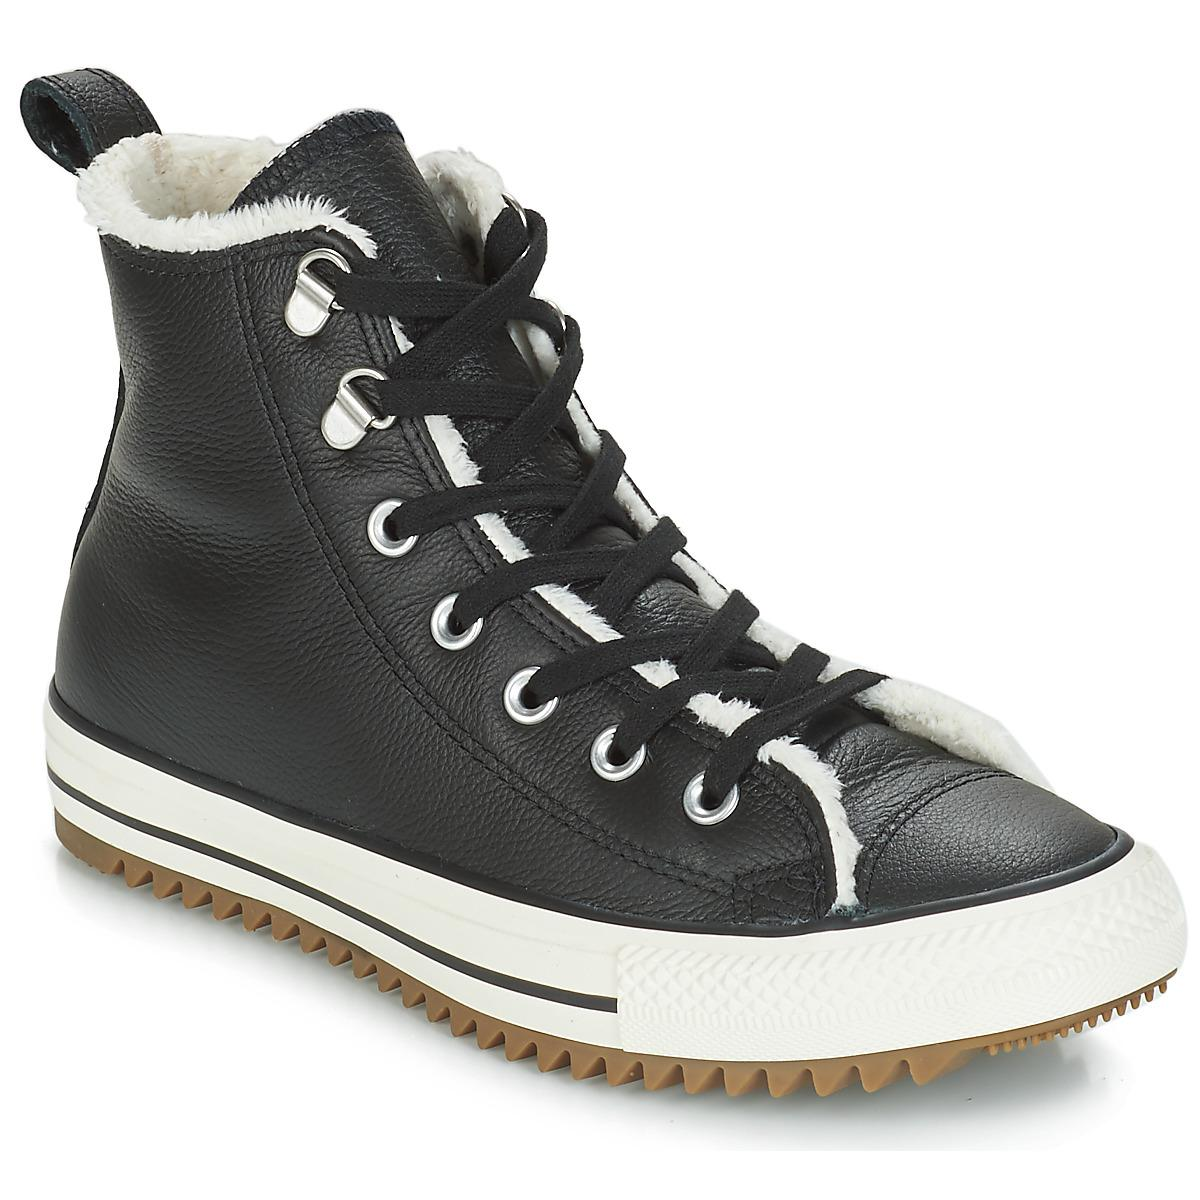 322d2e64b ... australia converse. chuck taylor all star hiker boot leather hi womens  shoes high top trainers